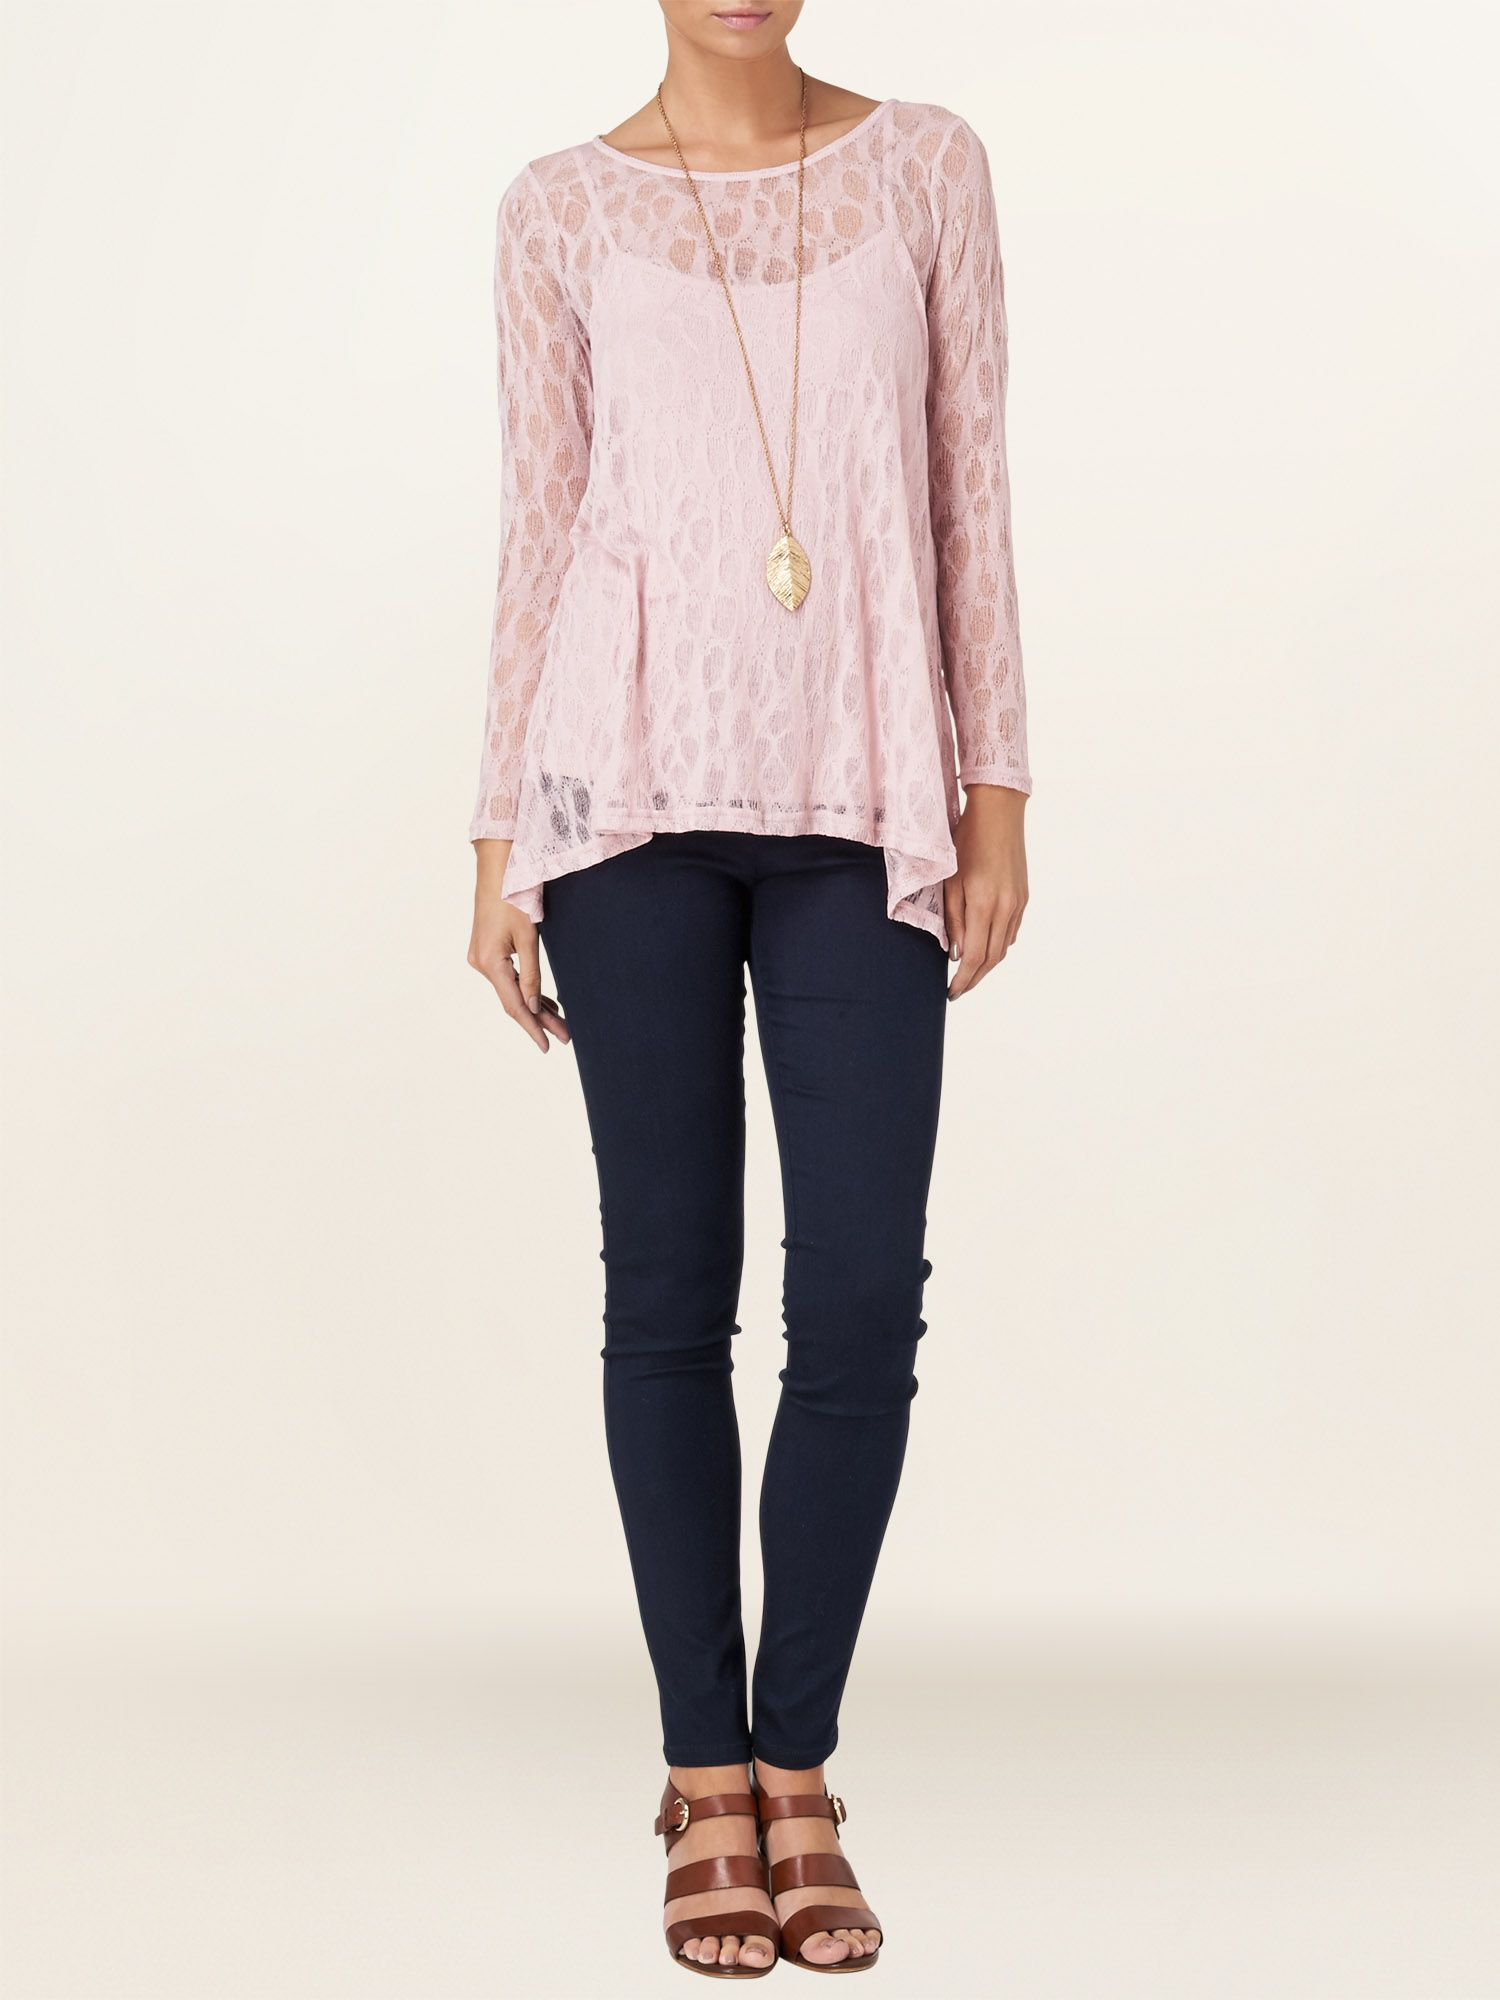 Plain pointelle top